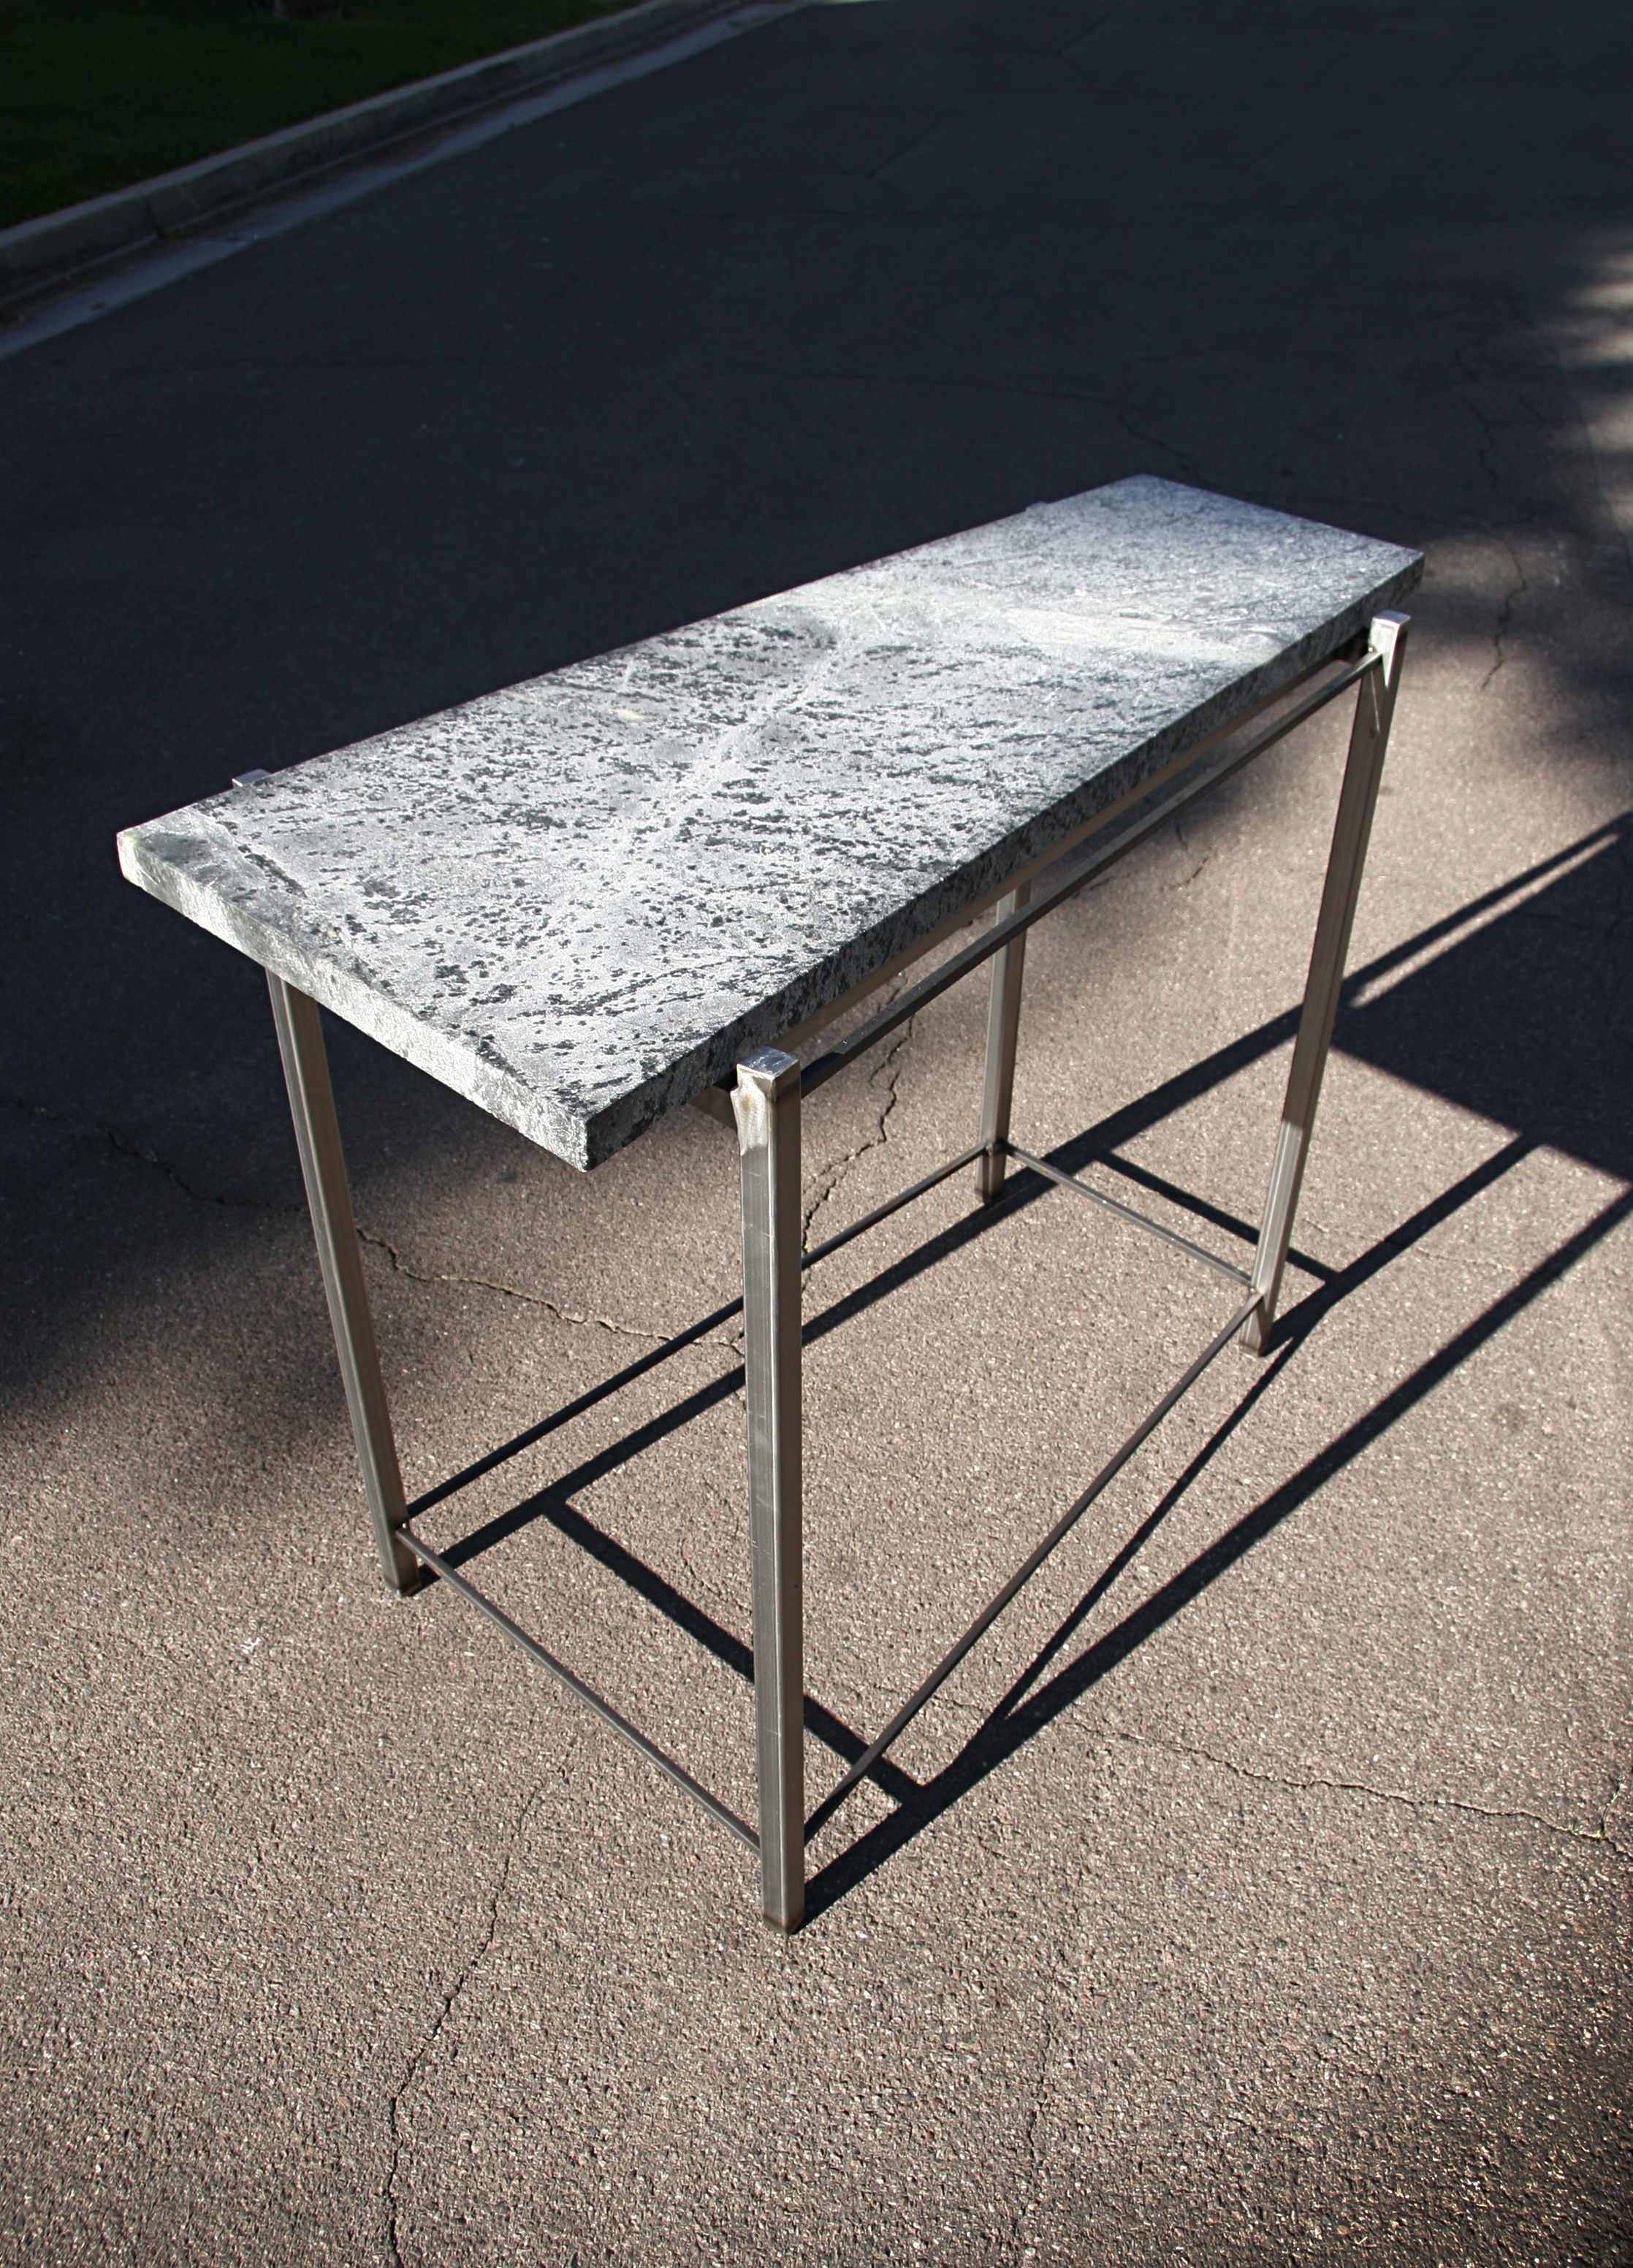 soapstone table